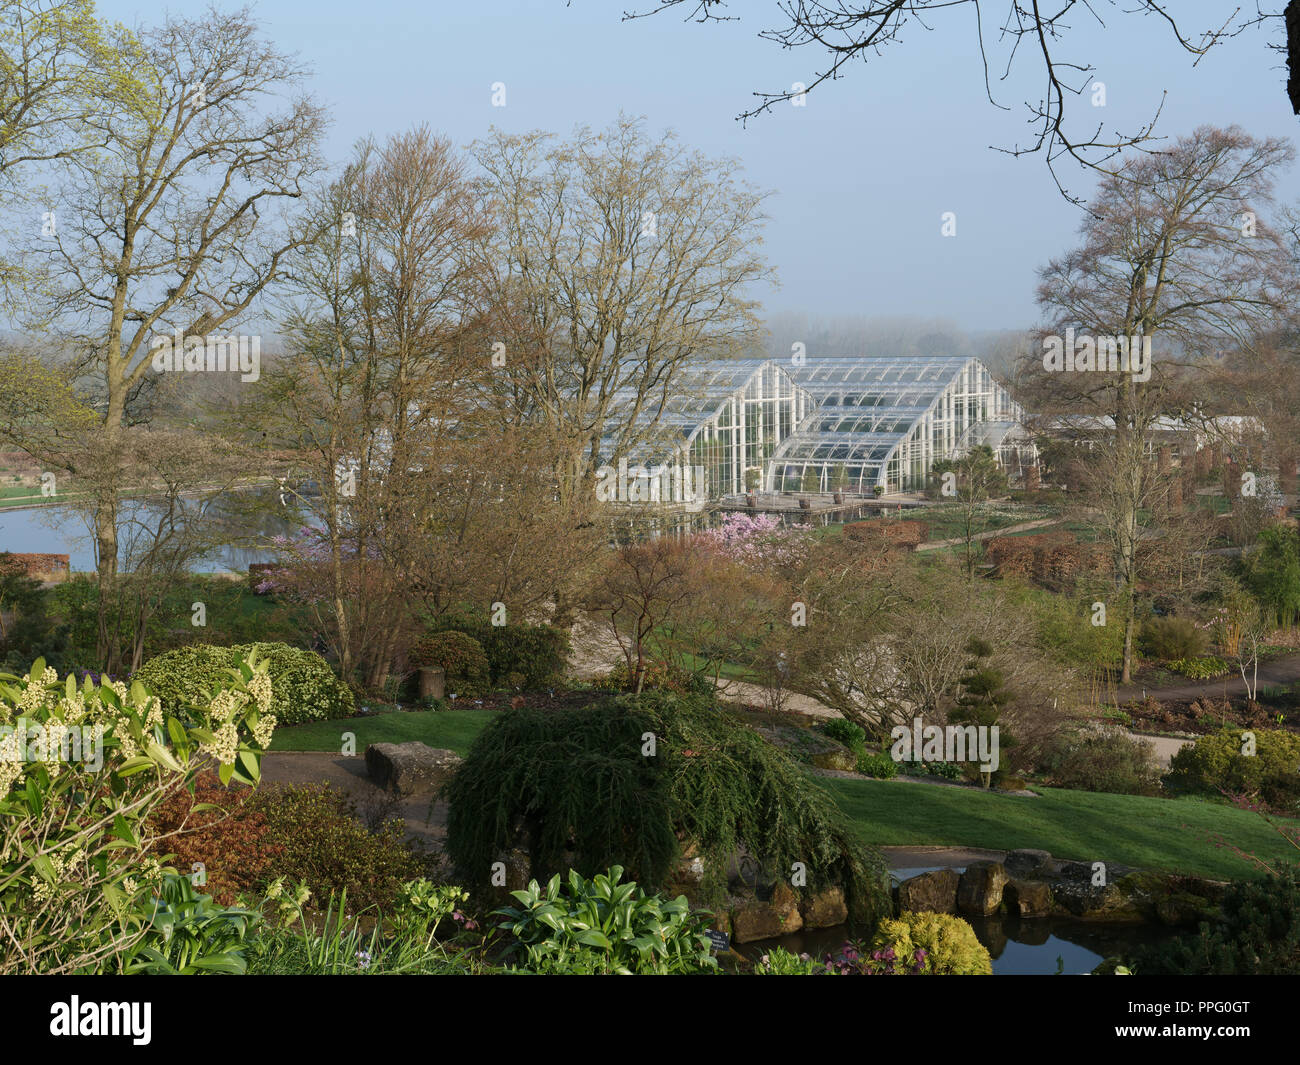 Early spring in the garden. View of the large glasshouse with its tropical and subtropical plants, of RHS Wisley with the gardens in early spring. - Stock Image